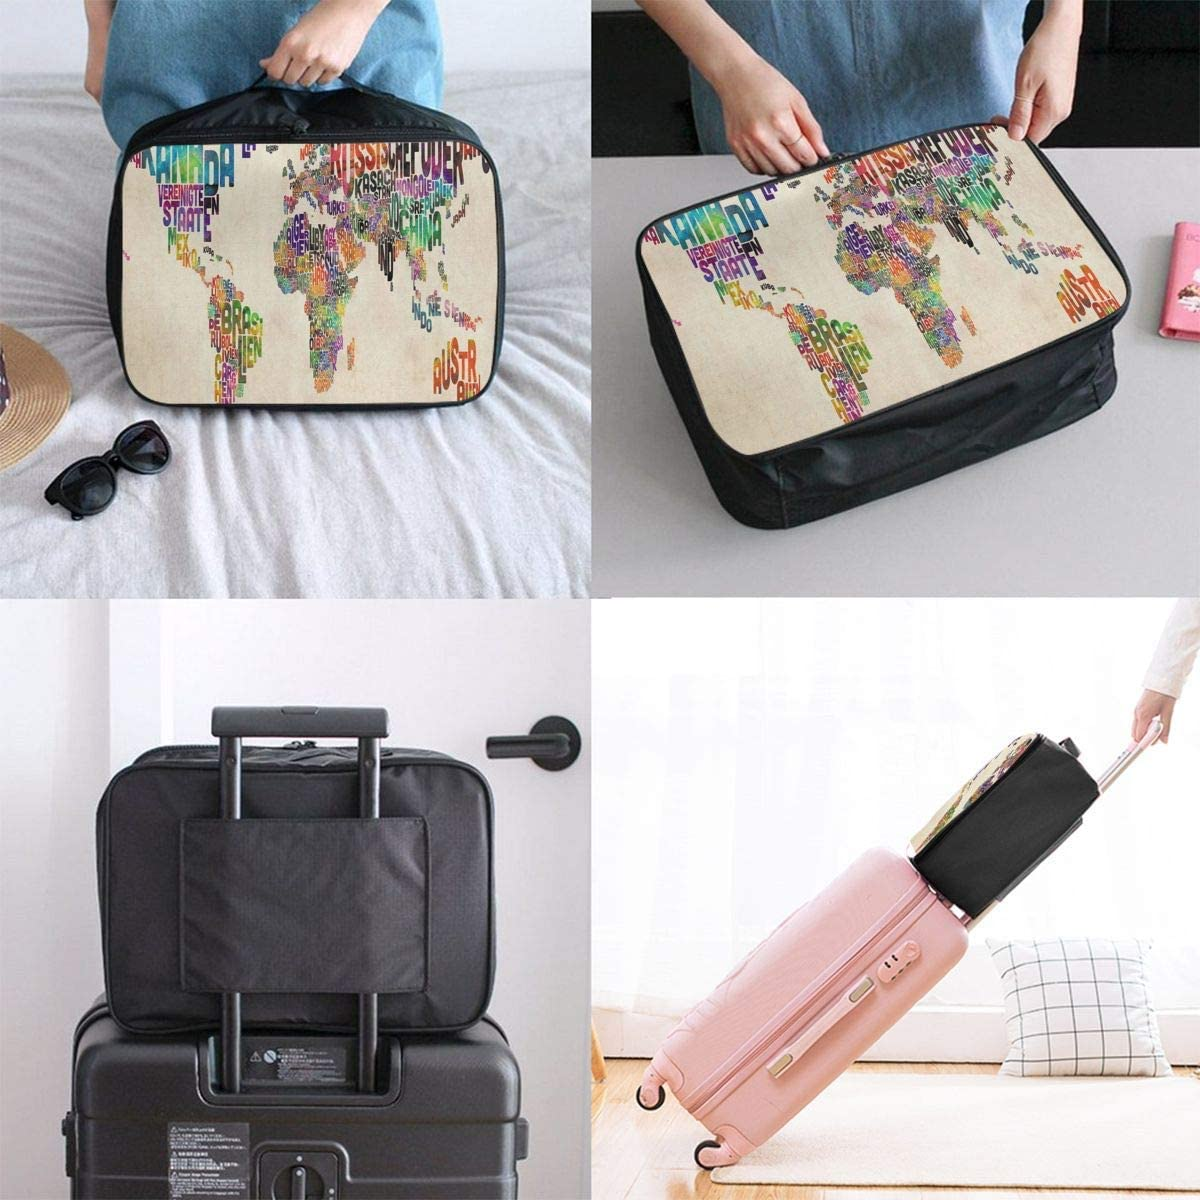 Travel Bags German Text Art Map Of The World Portable Suitcase Trolley Handle Luggage Bag